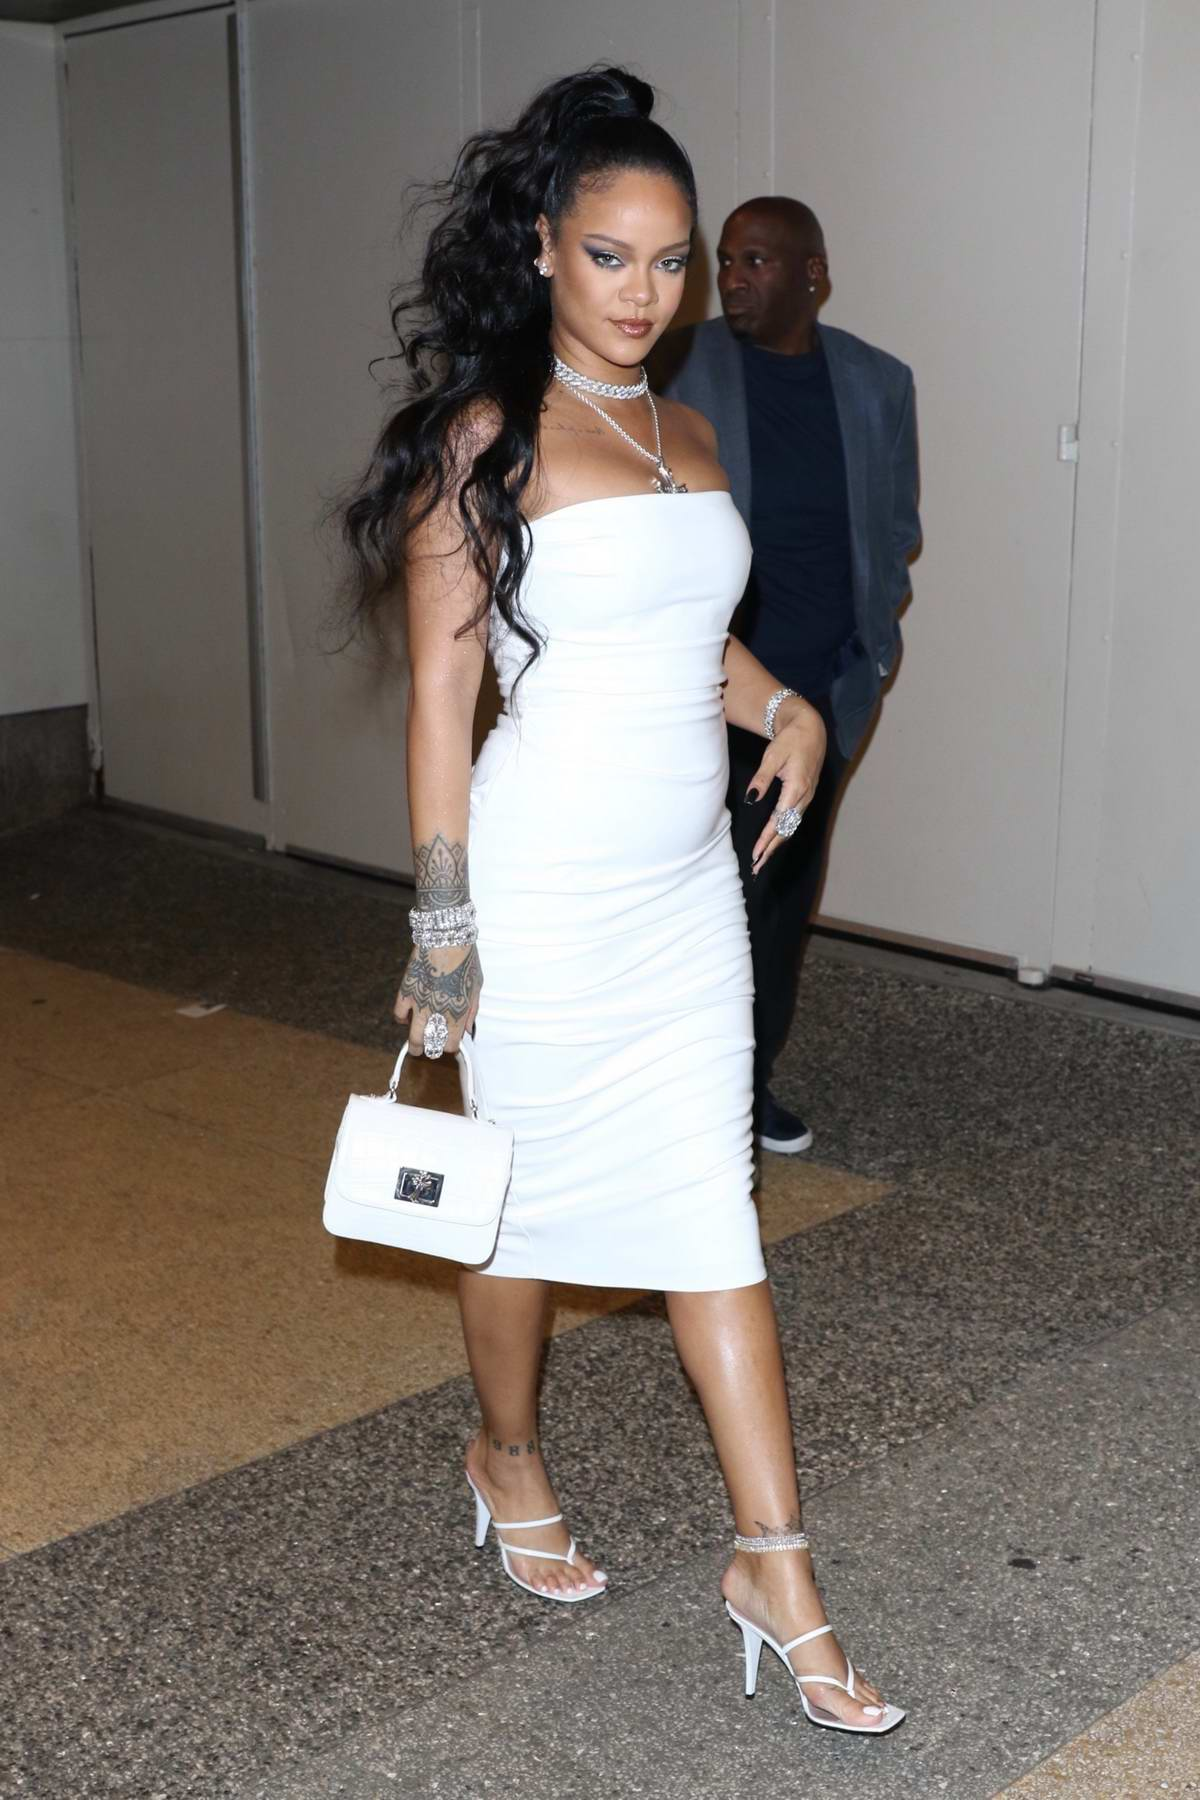 Rihanna looks stunning in all white as she arrives at her hairstylist Yusef Williams' Porcelain Ball in New York City